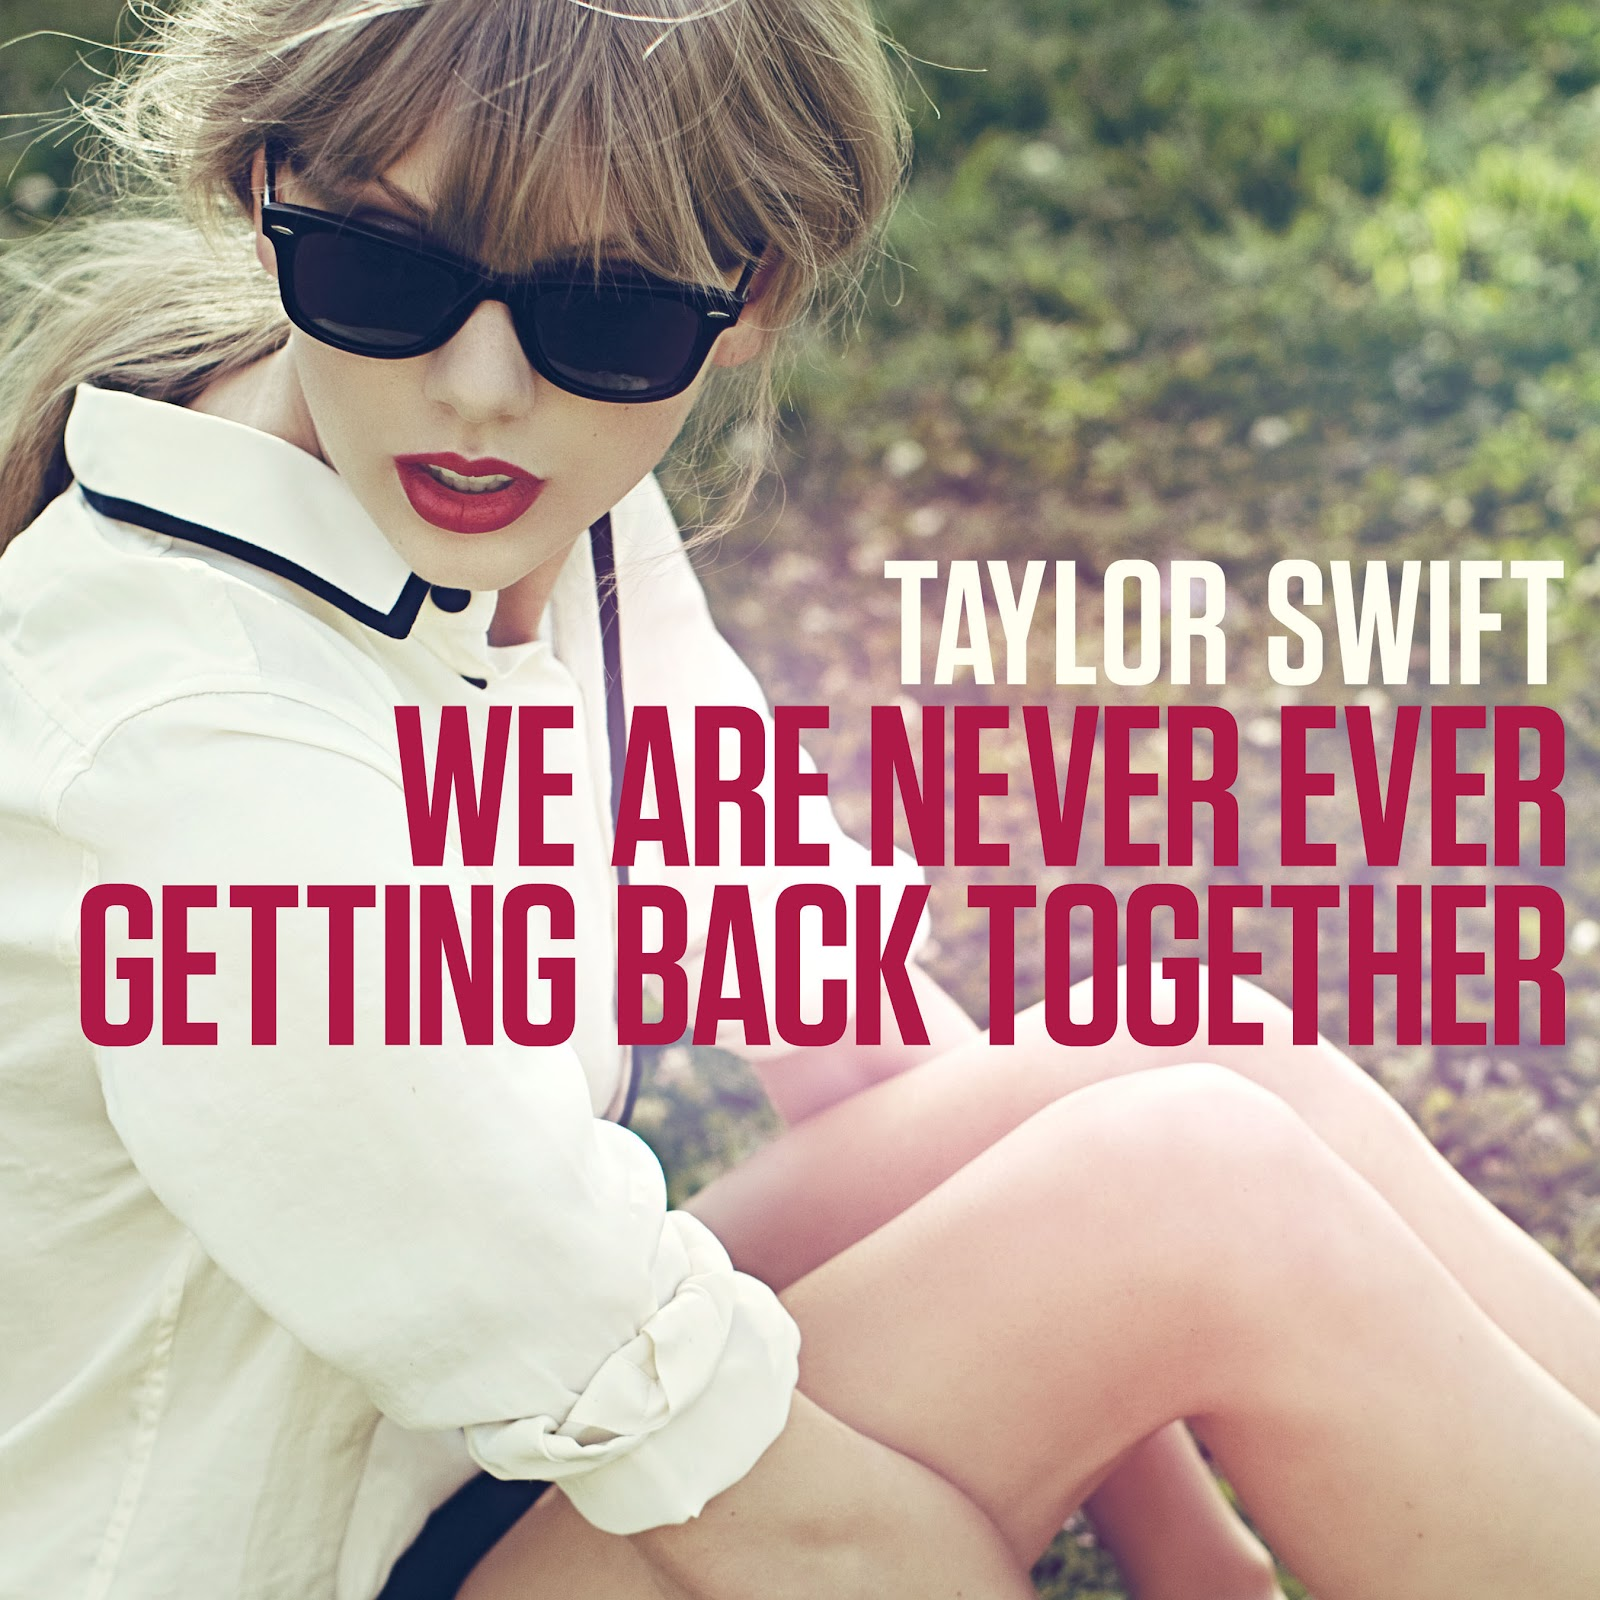 http://3.bp.blogspot.com/-FbBqIobnzFY/UD4Gb3Uv-GI/AAAAAAAAApk/epzNLEUgKKw/s1600/Cover-art-for-Taylor-Swift-single-We-Are-Never-Ever-Getting-Back-Together.jpg